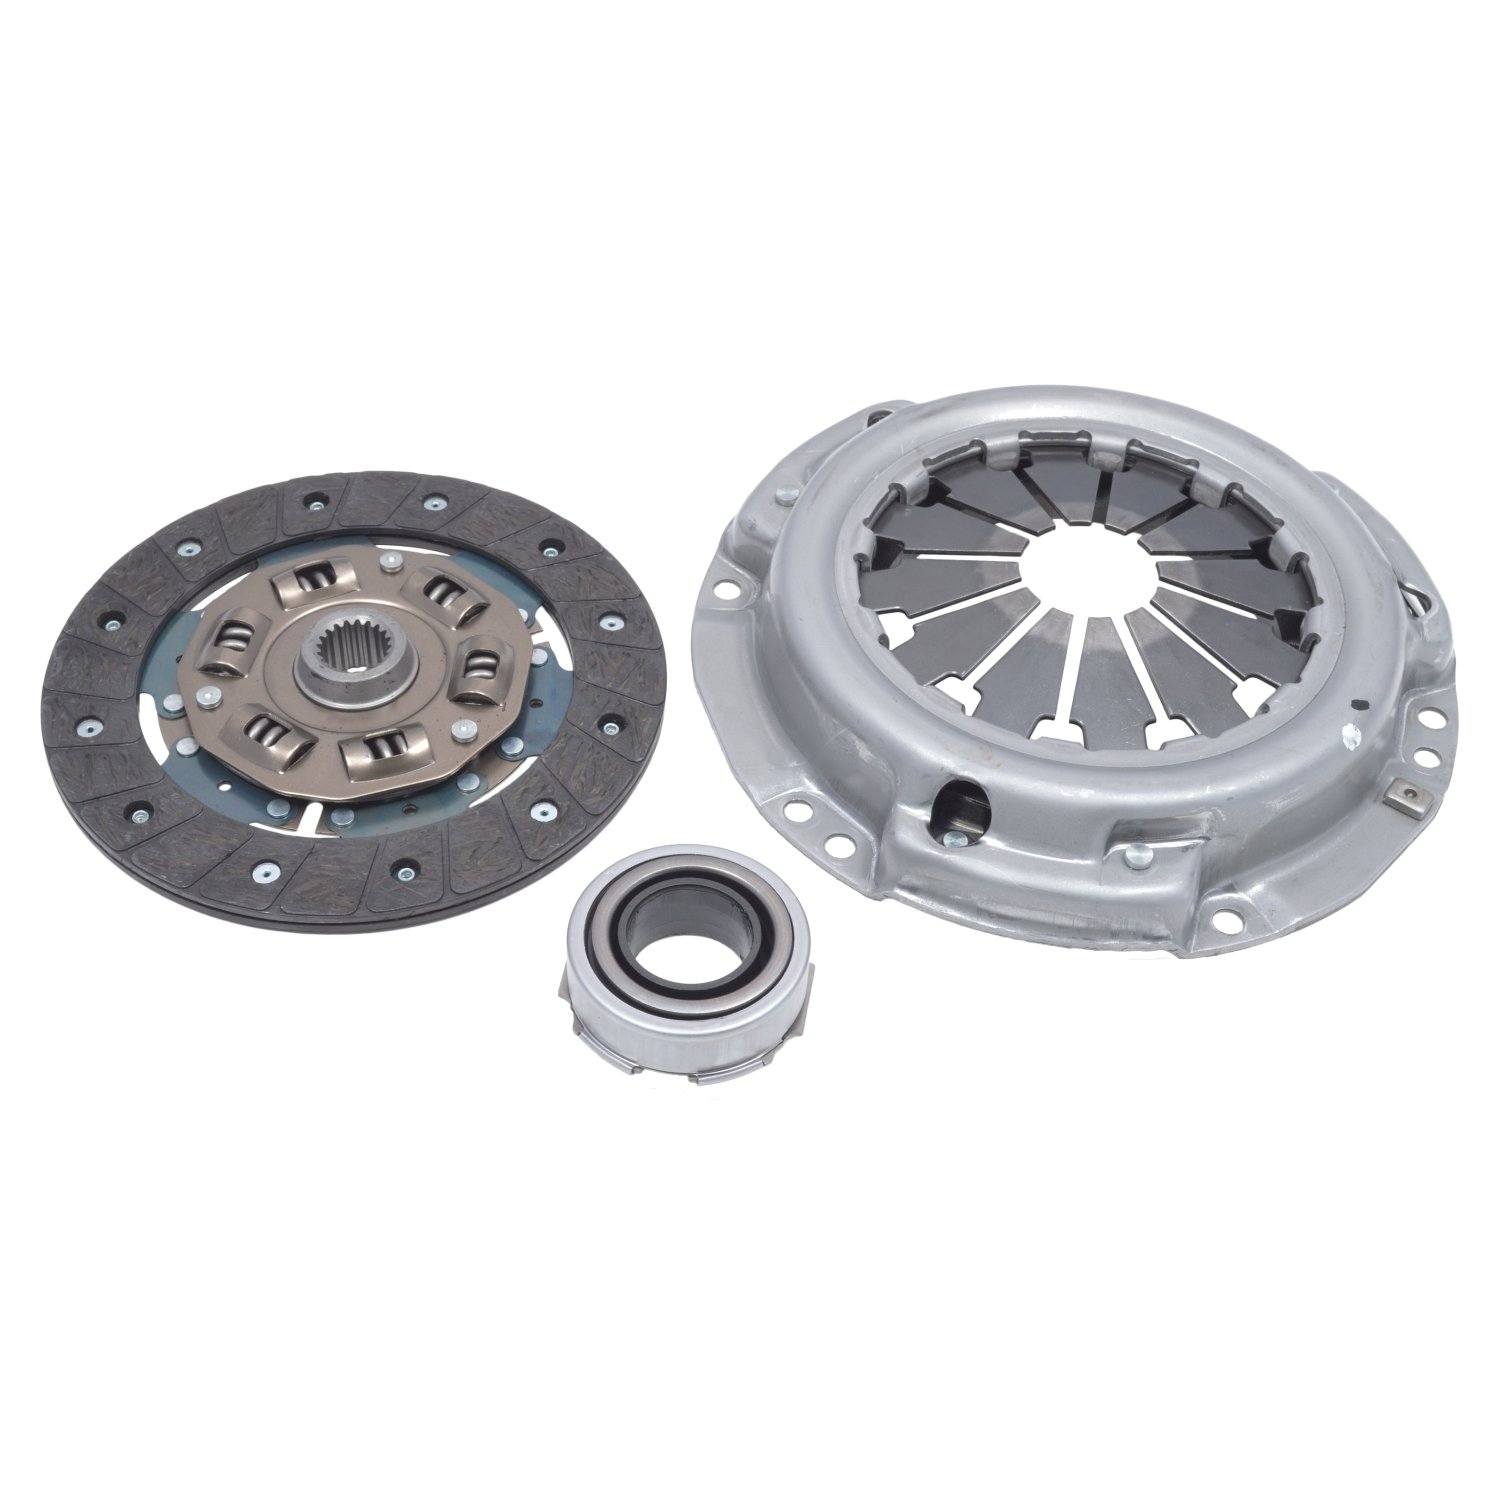 Blue Print ADK83024 clutch kit with clutch release bearing - Pack of 1 Automotive Distributors Limited